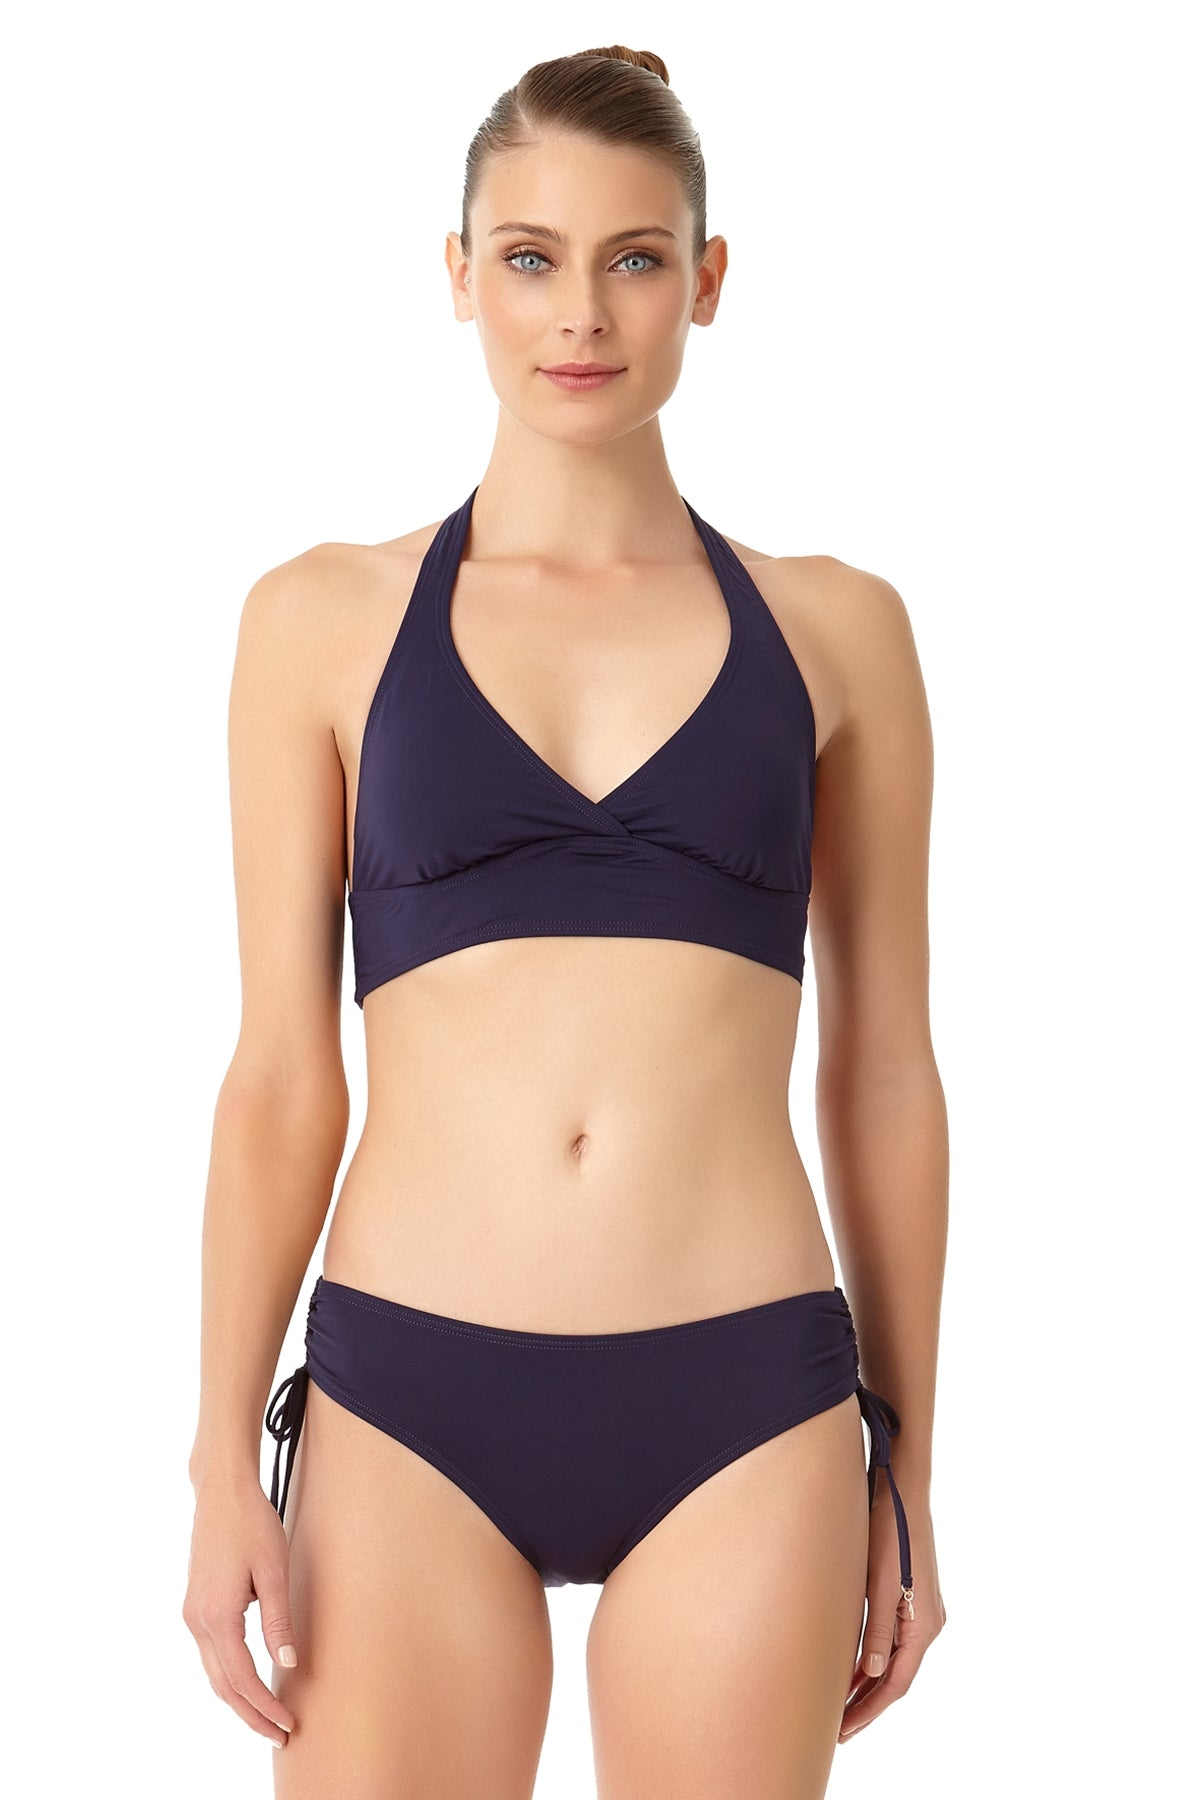 Anne Cole - Live In Color Marilyn Halter Bra Swim Top Navy 1